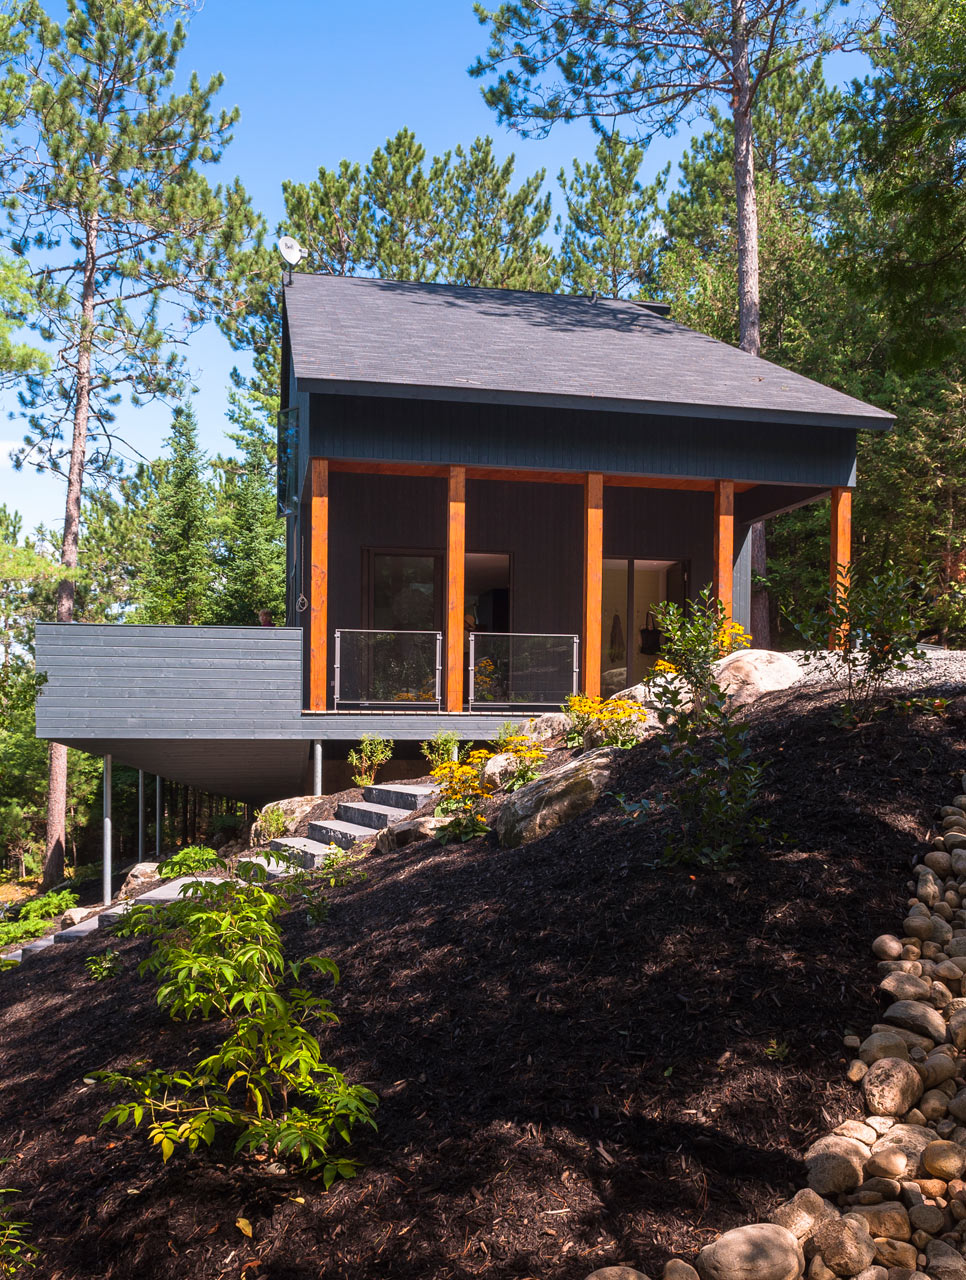 Vacation Home for Nature Lovers by Anik Péloquin Architecte